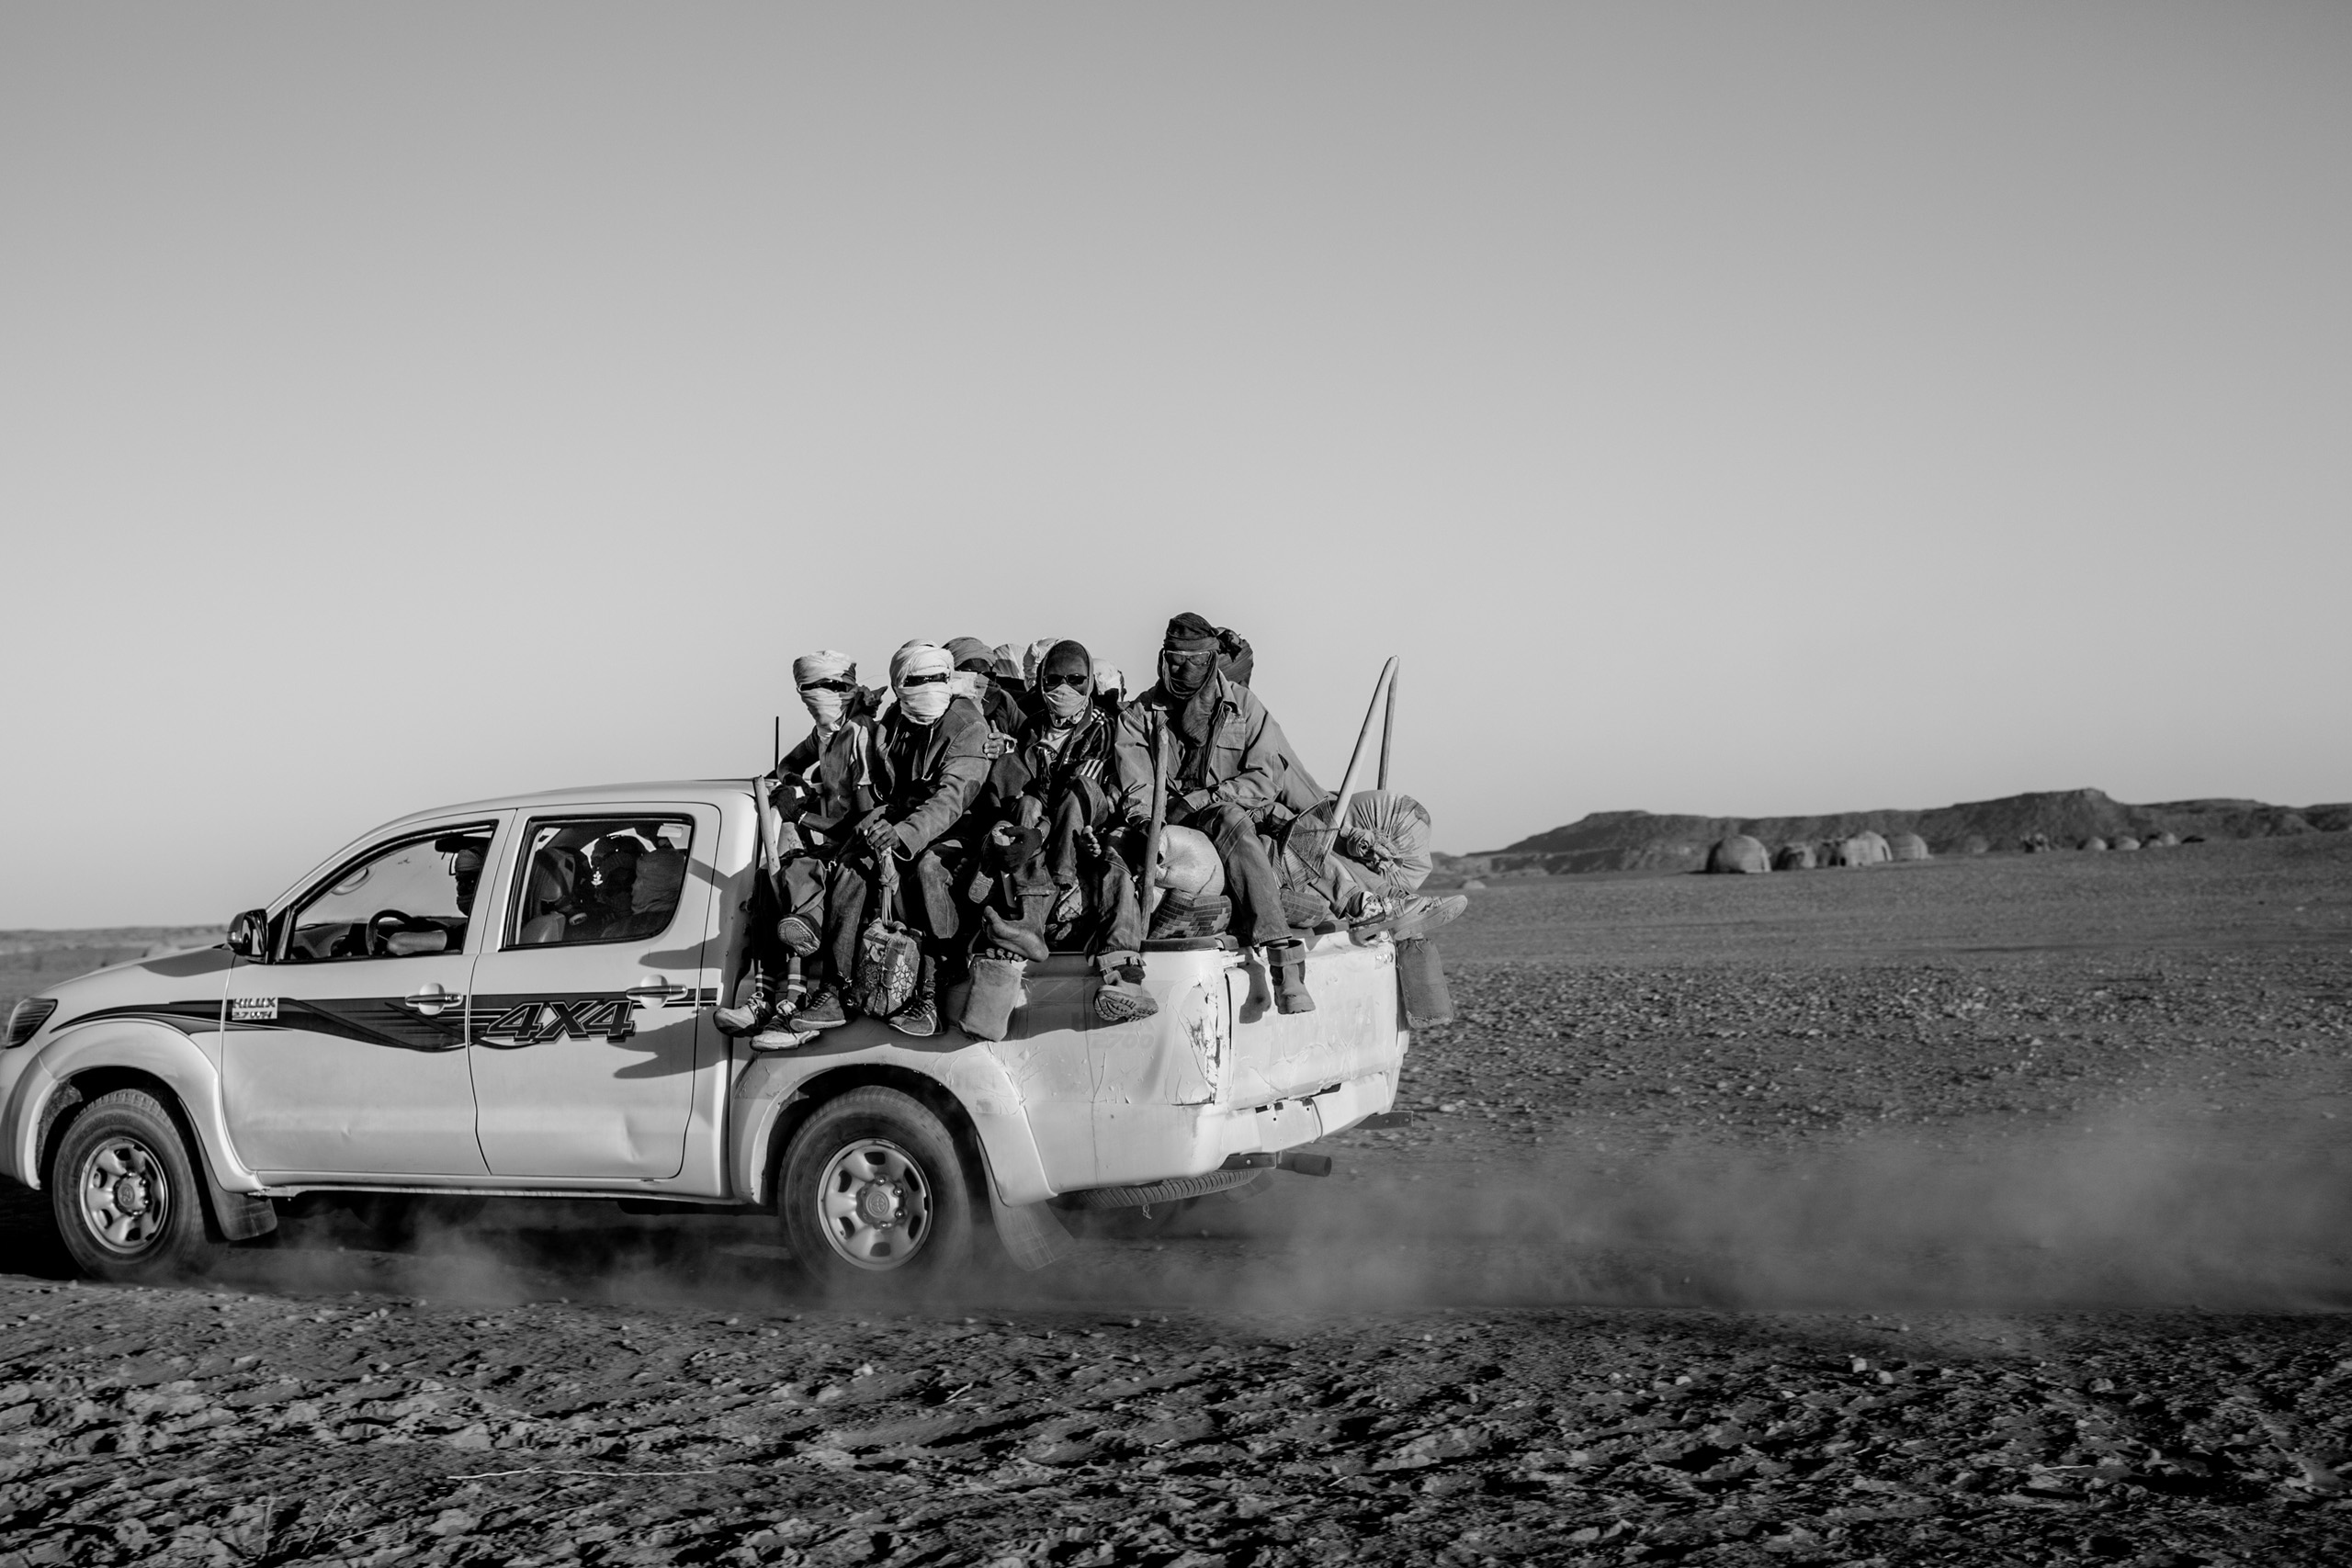 Migrants are stuffed into the back of a pickup truck as they begin the first day of their five day journey across the Sahara to Libya, in Niger on April 20, 2015.